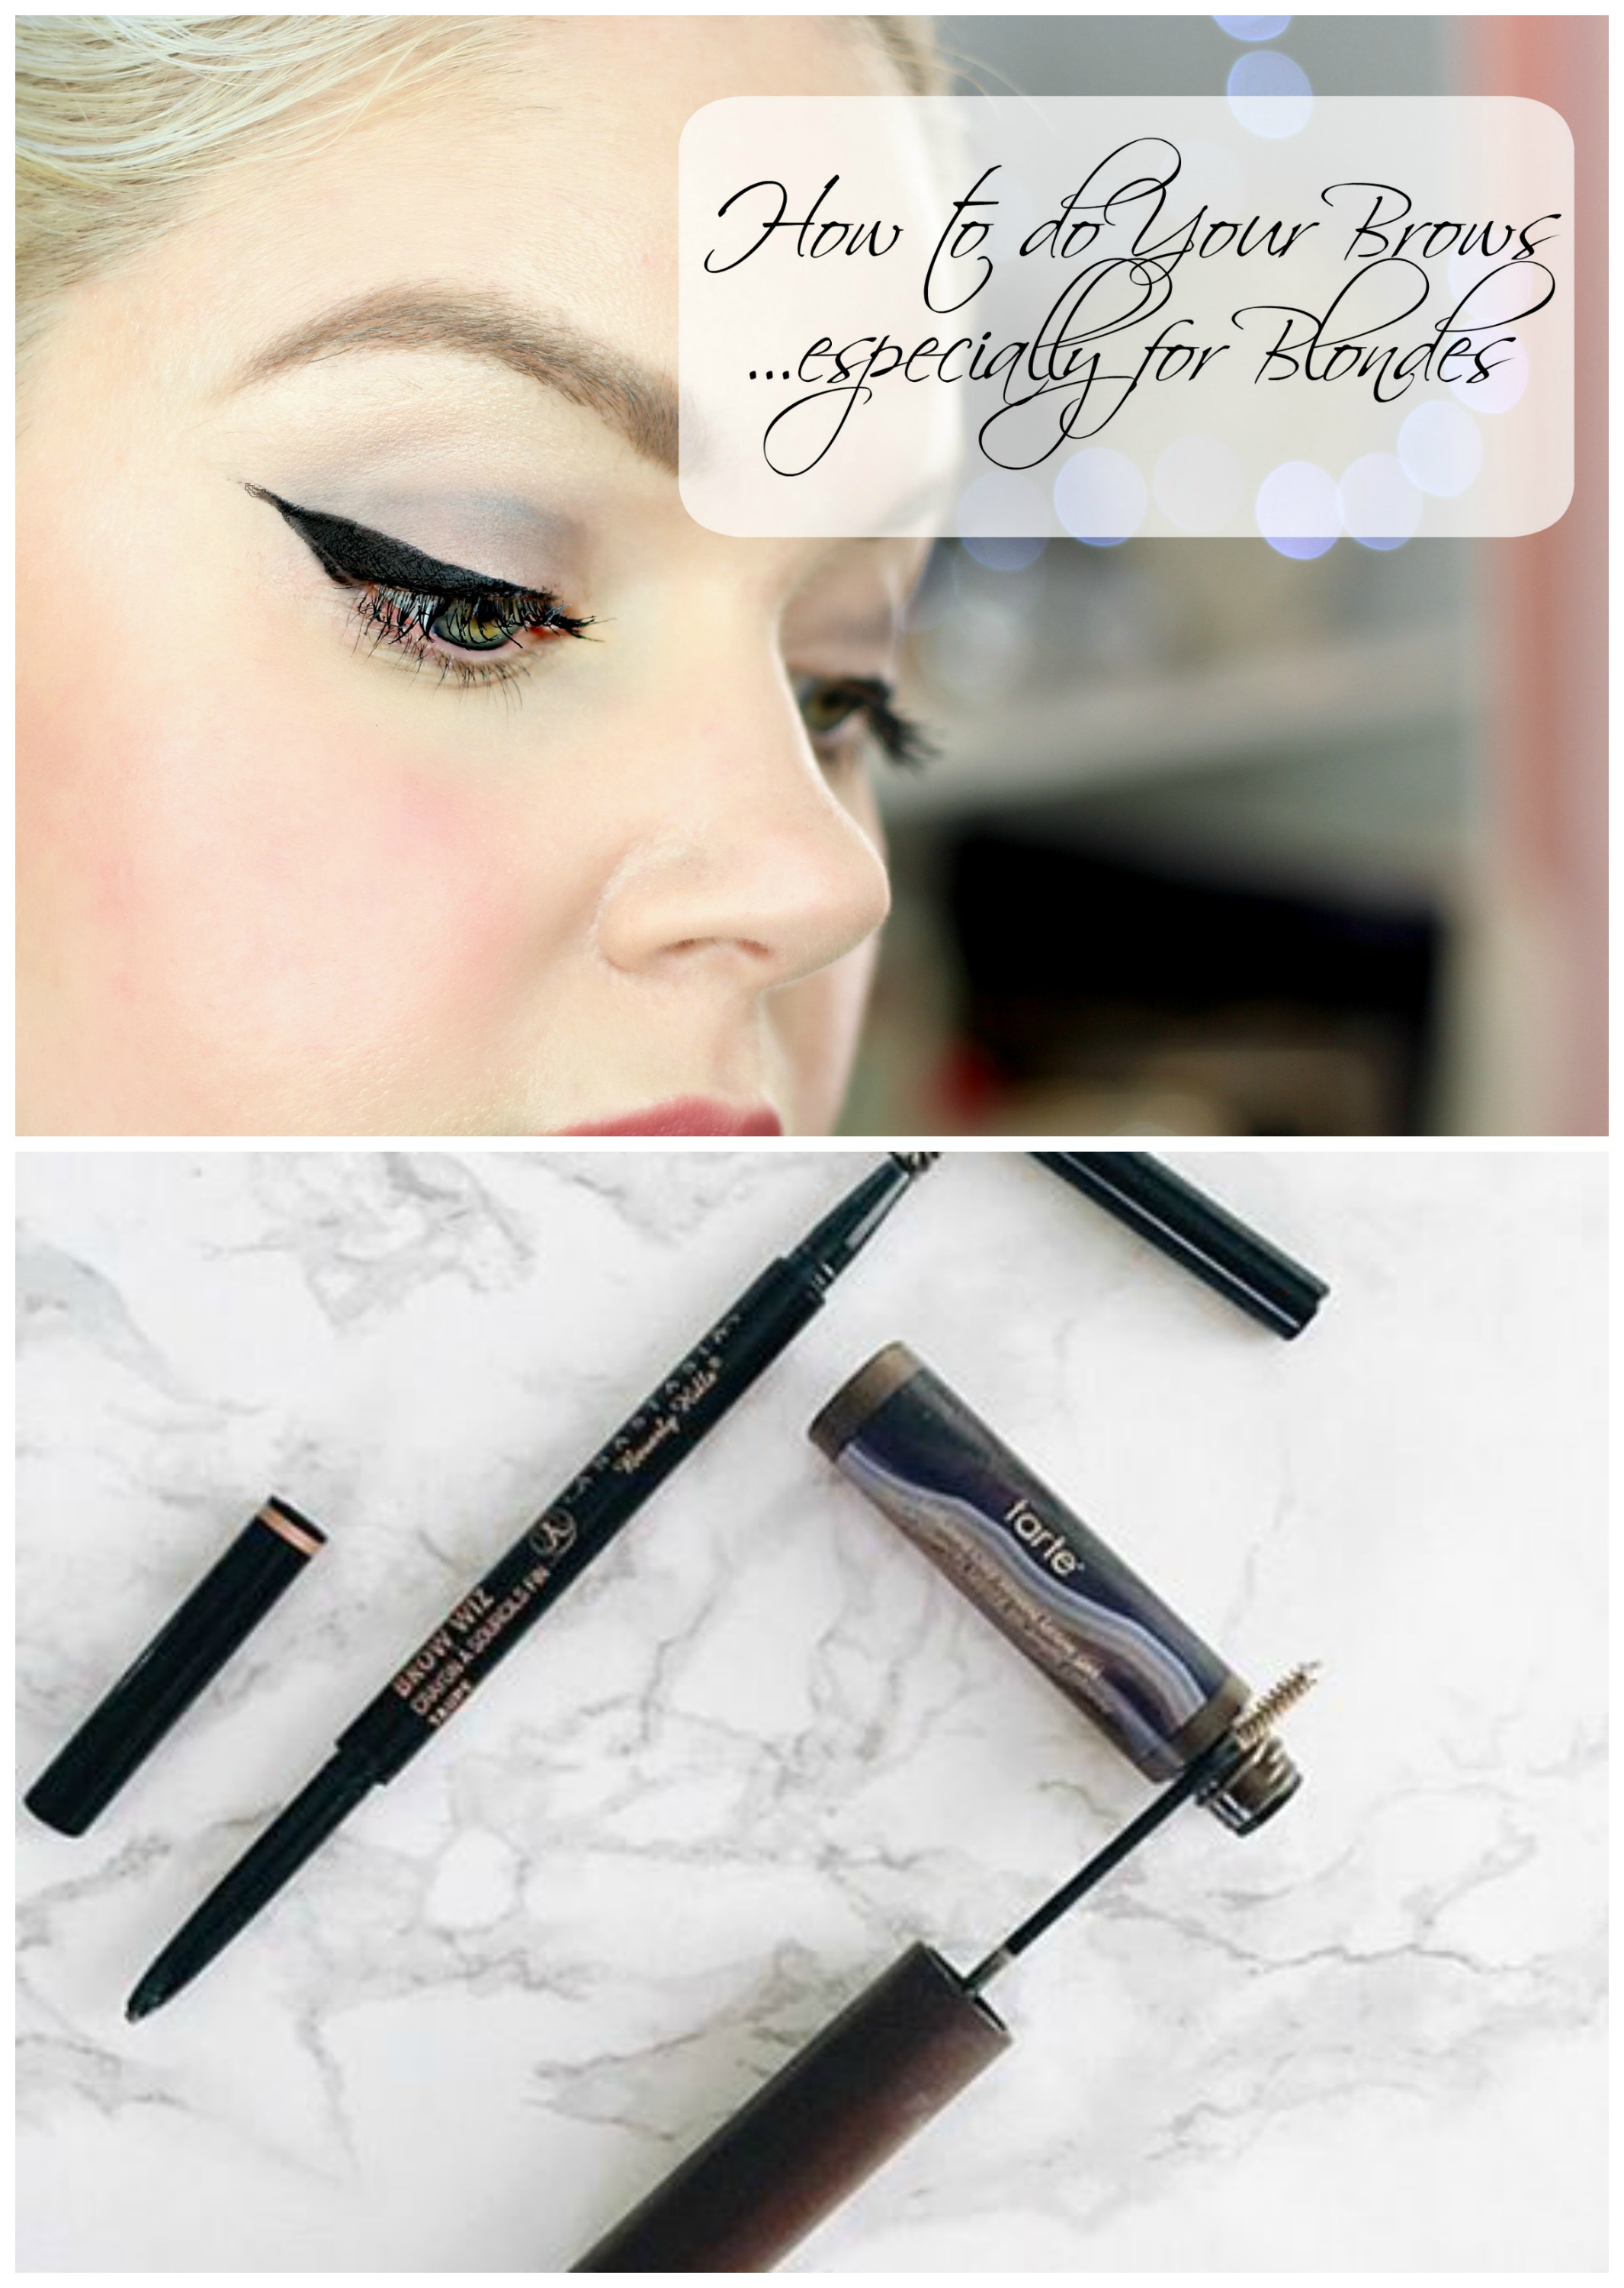 Tips For Perfect Eyebrows Especially For Blondes